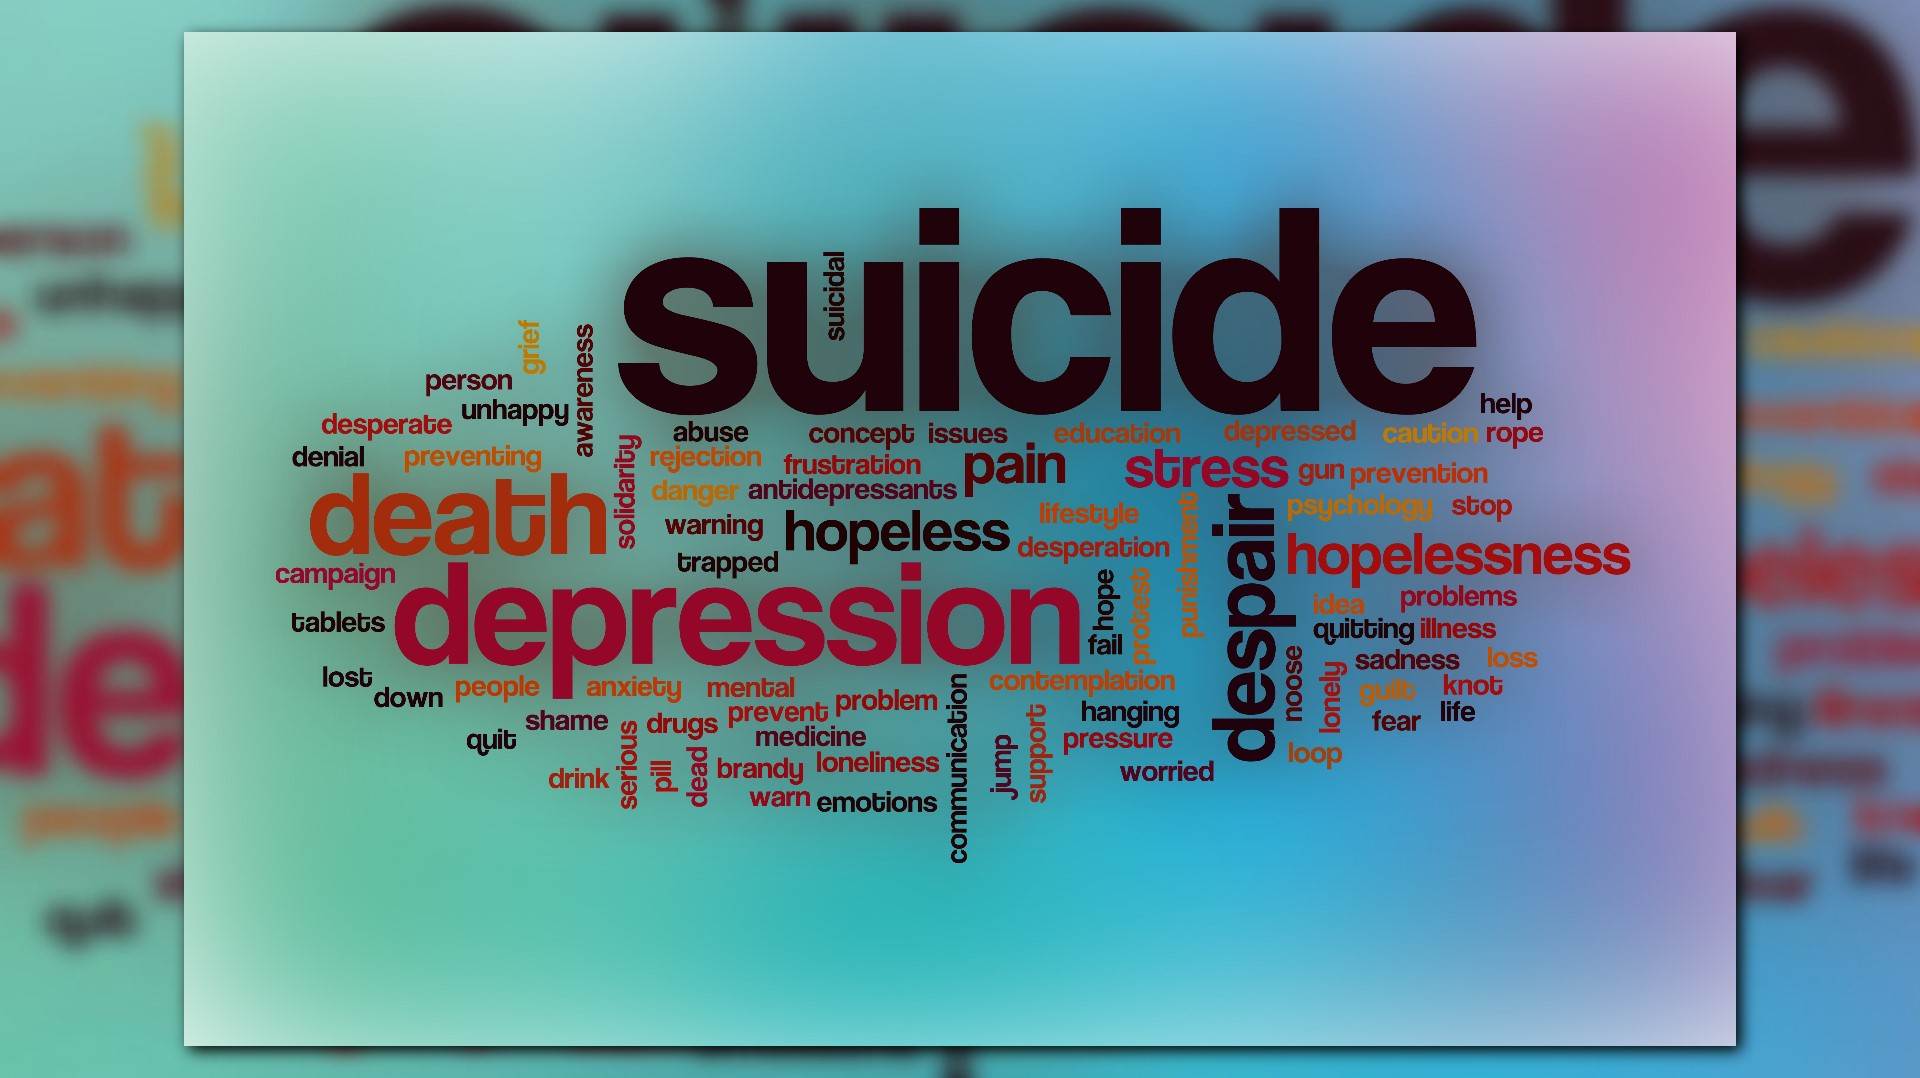 Stand up! Get help and prevent suicide